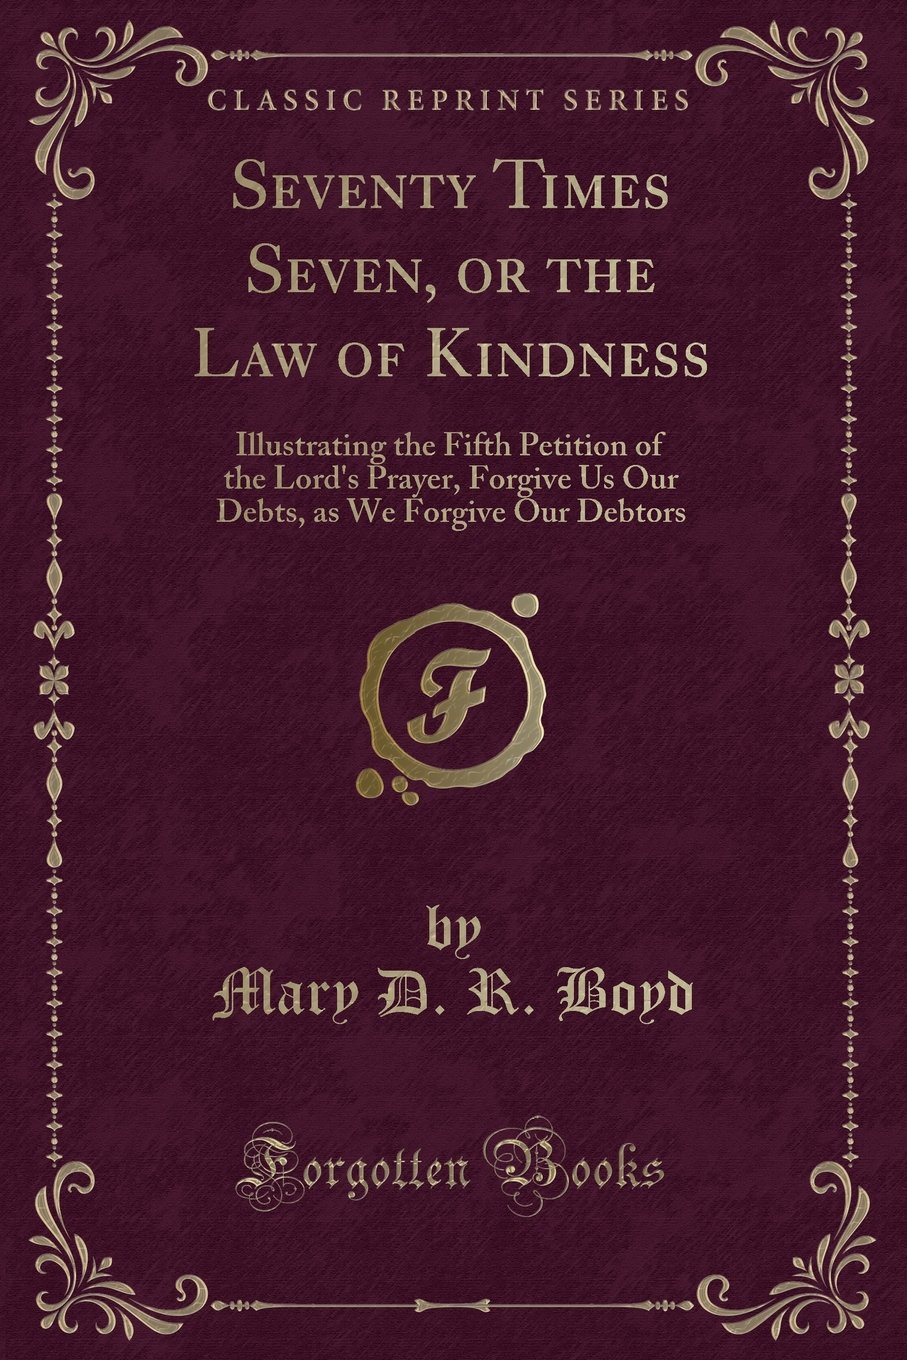 Seventy Times Seven, or the Law of Kindness: Illustrating the Fifth Petition of the Lord's Prayer, Forgive Us Our Debts, as We Forgive Our Debtors (Classic Reprint) pdf